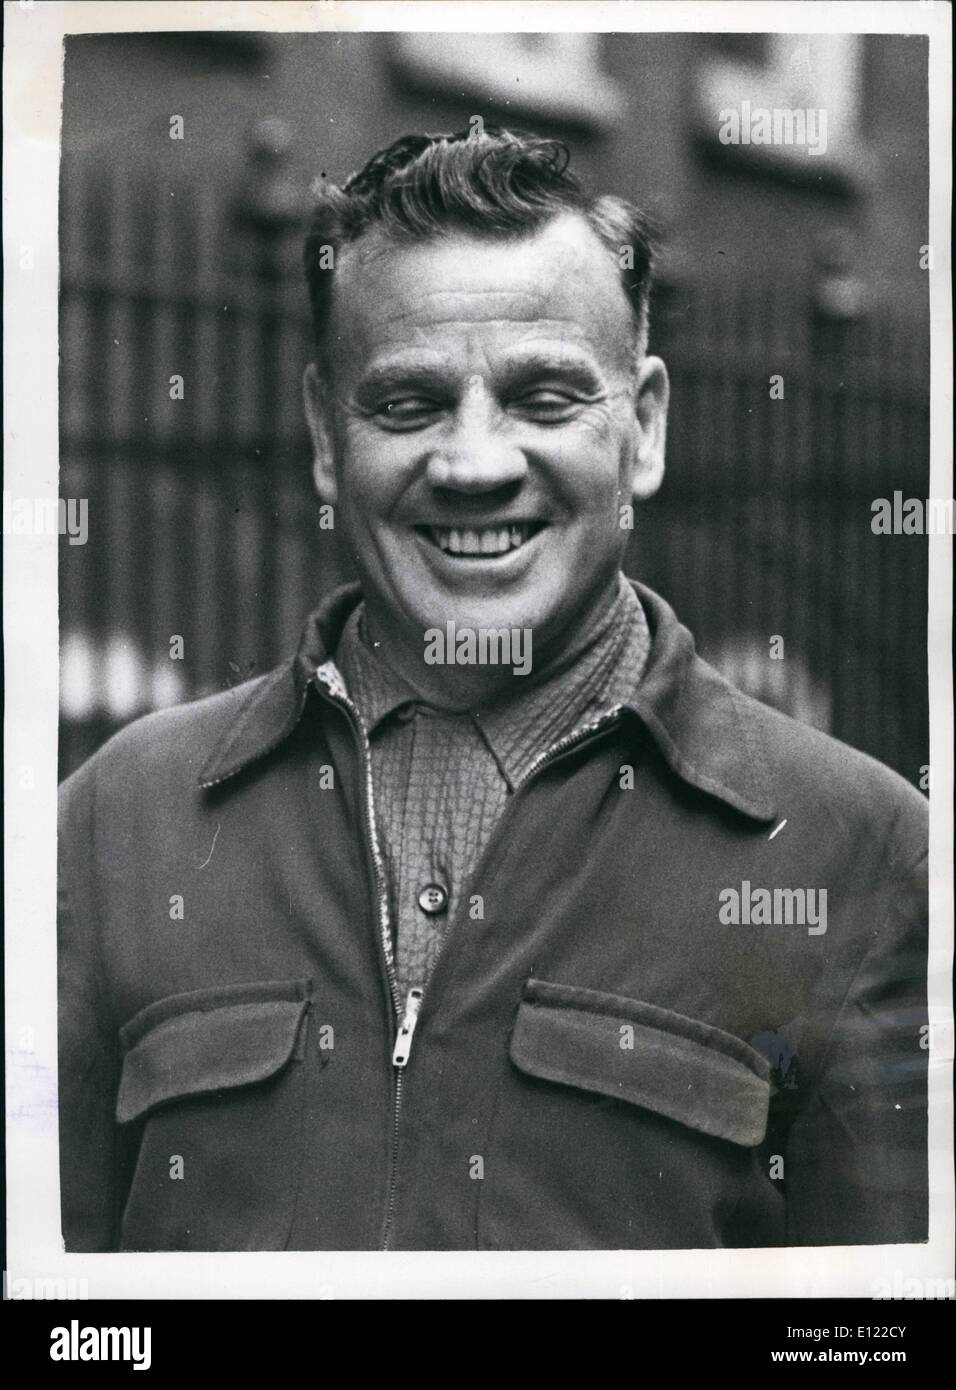 Jul. 07, 1983 - Theatre Agent at Bow-Street.: Photo Shows John Walter Leweliyn Puc, London Theatre Agent , who was Stock Photo